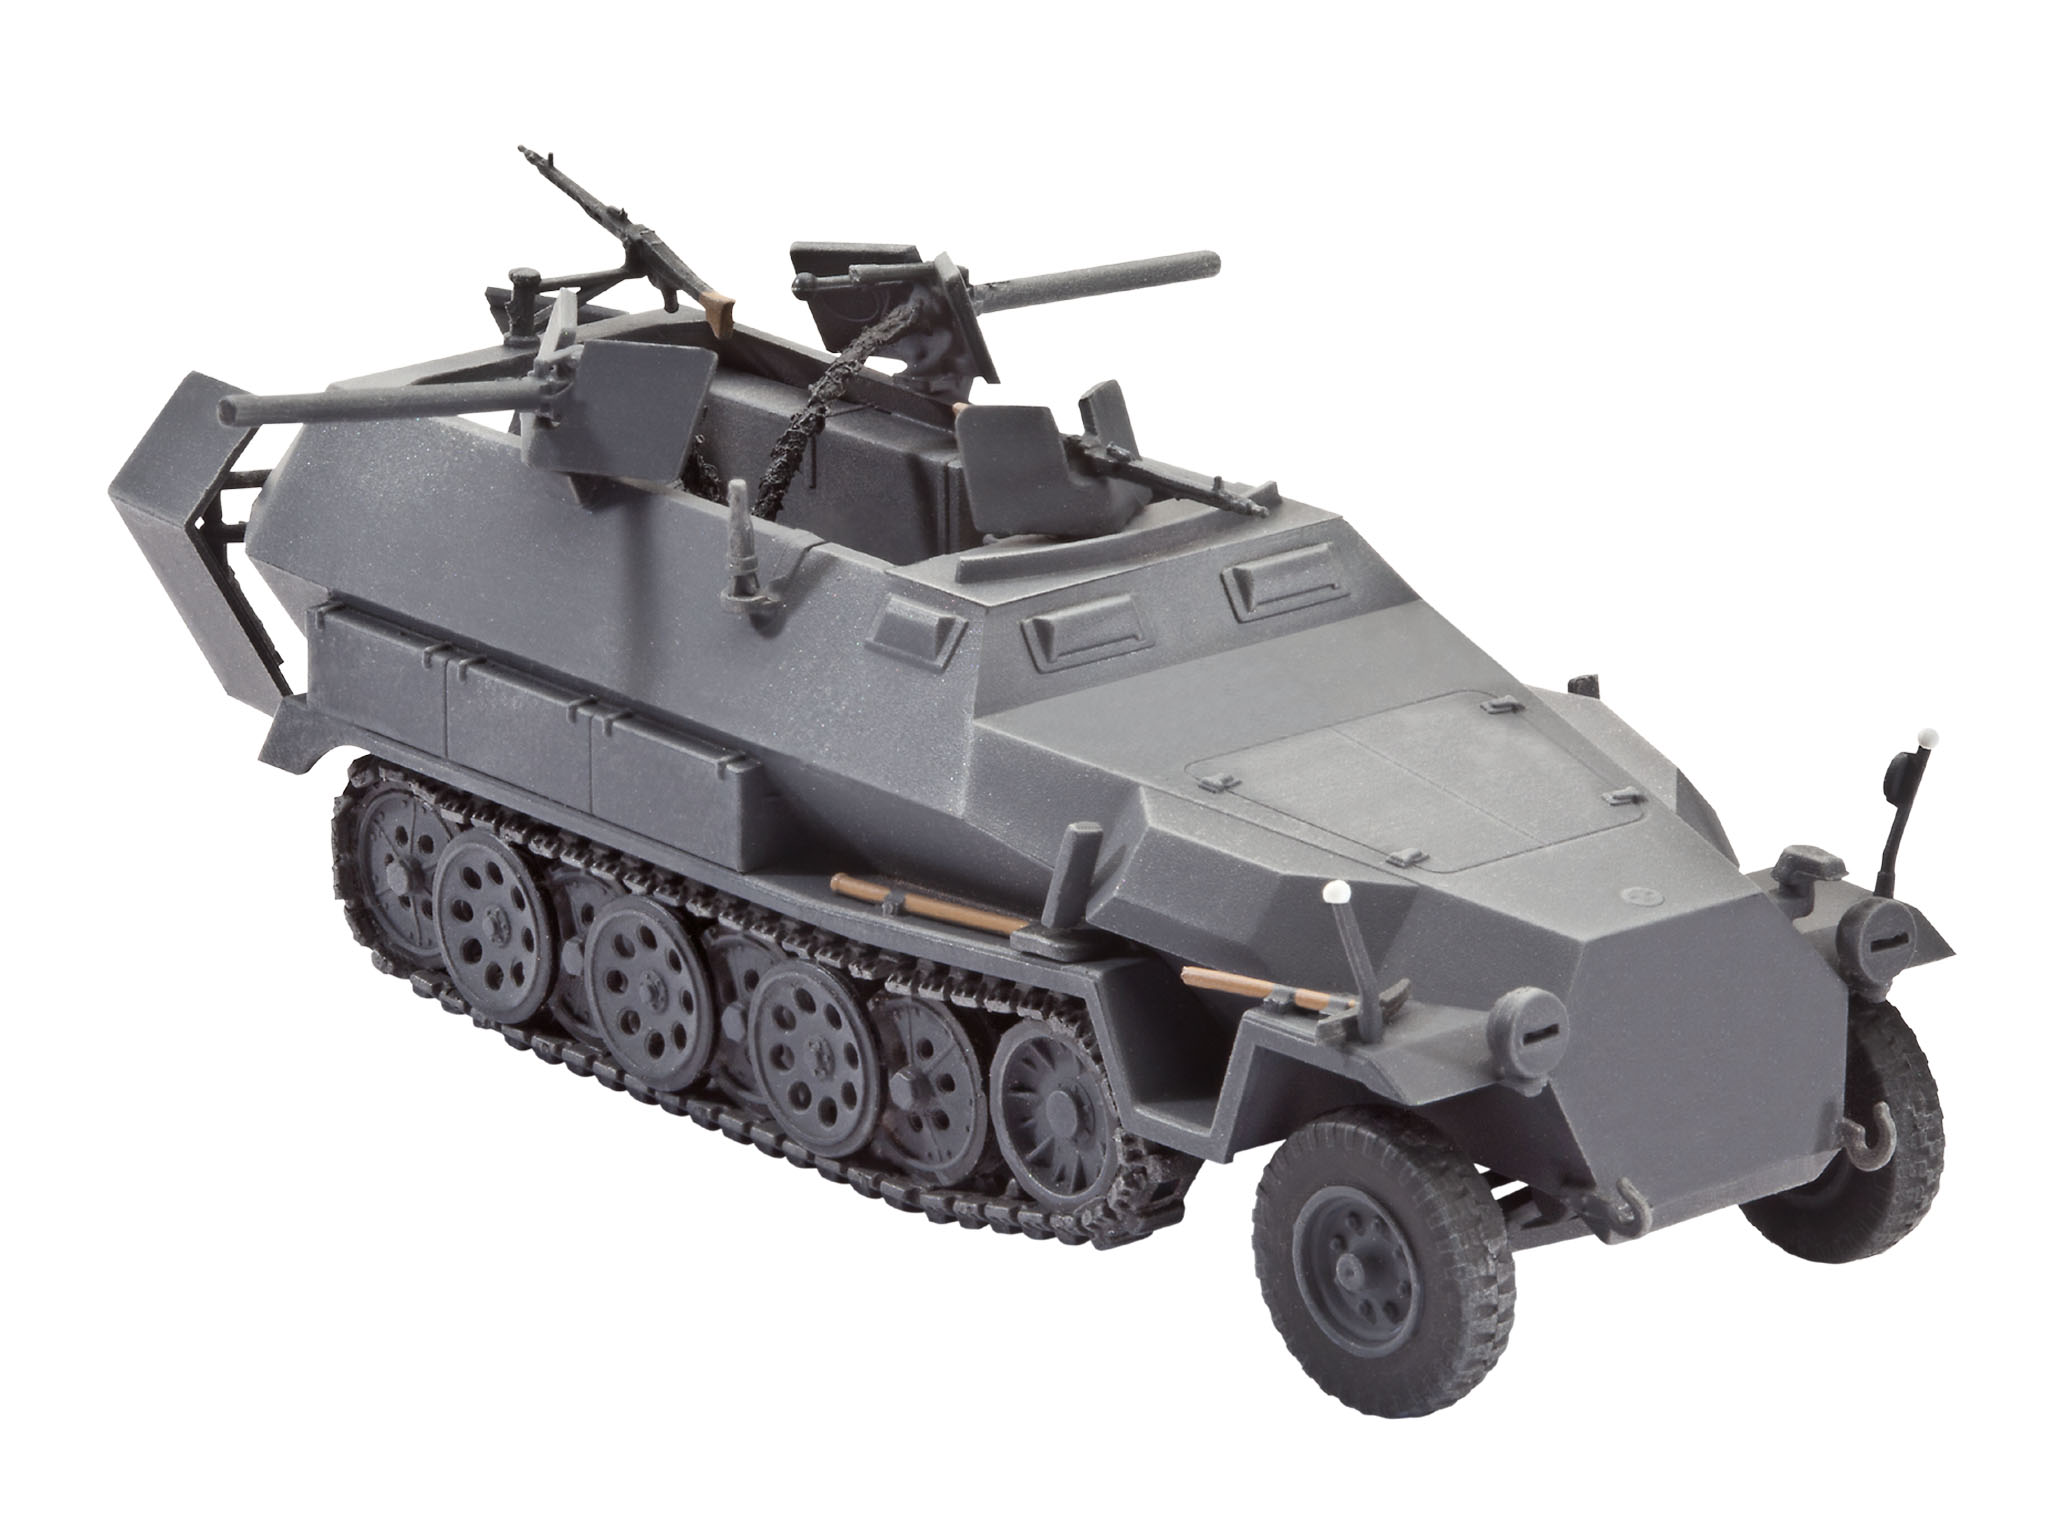 rc planes ww2 with Sd Kfz 251 16 Ausf C on File 323bg B26 3 besides Avro Vulcan further Ldo33512 moreover Viewtopic also Hobbyzone Mini.